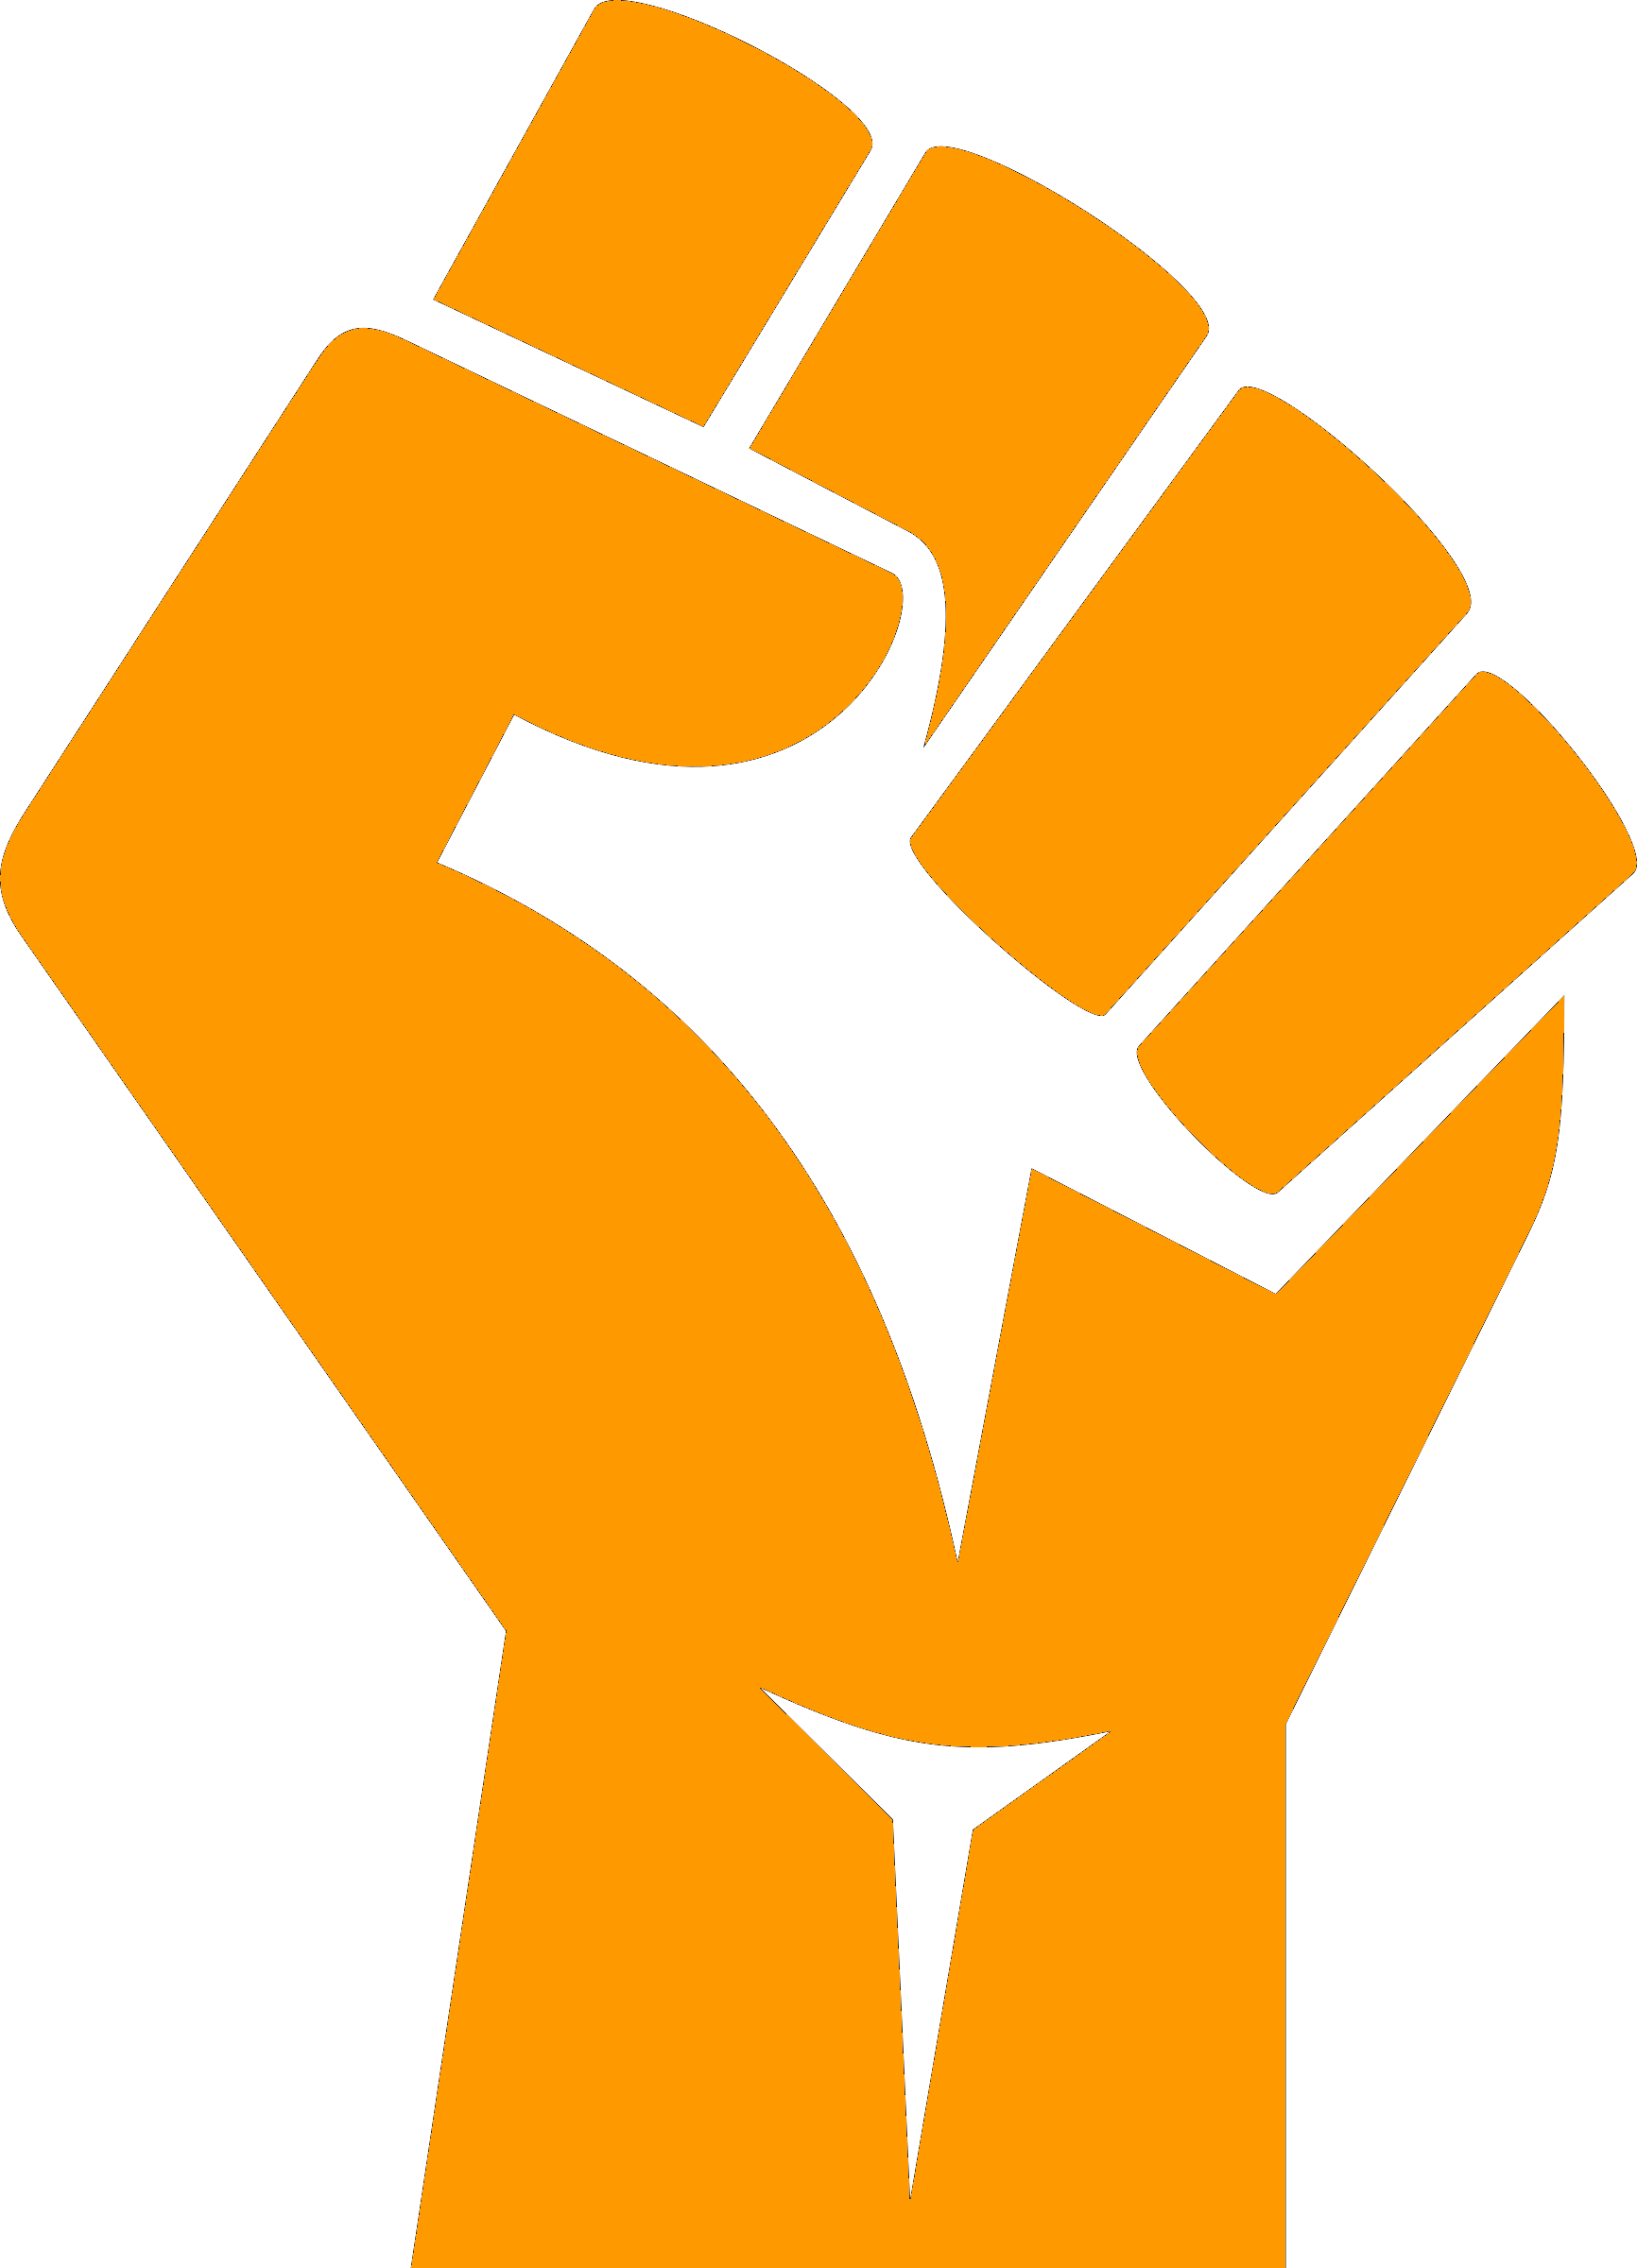 Fist clipart raised fist. File png wikimedia commons